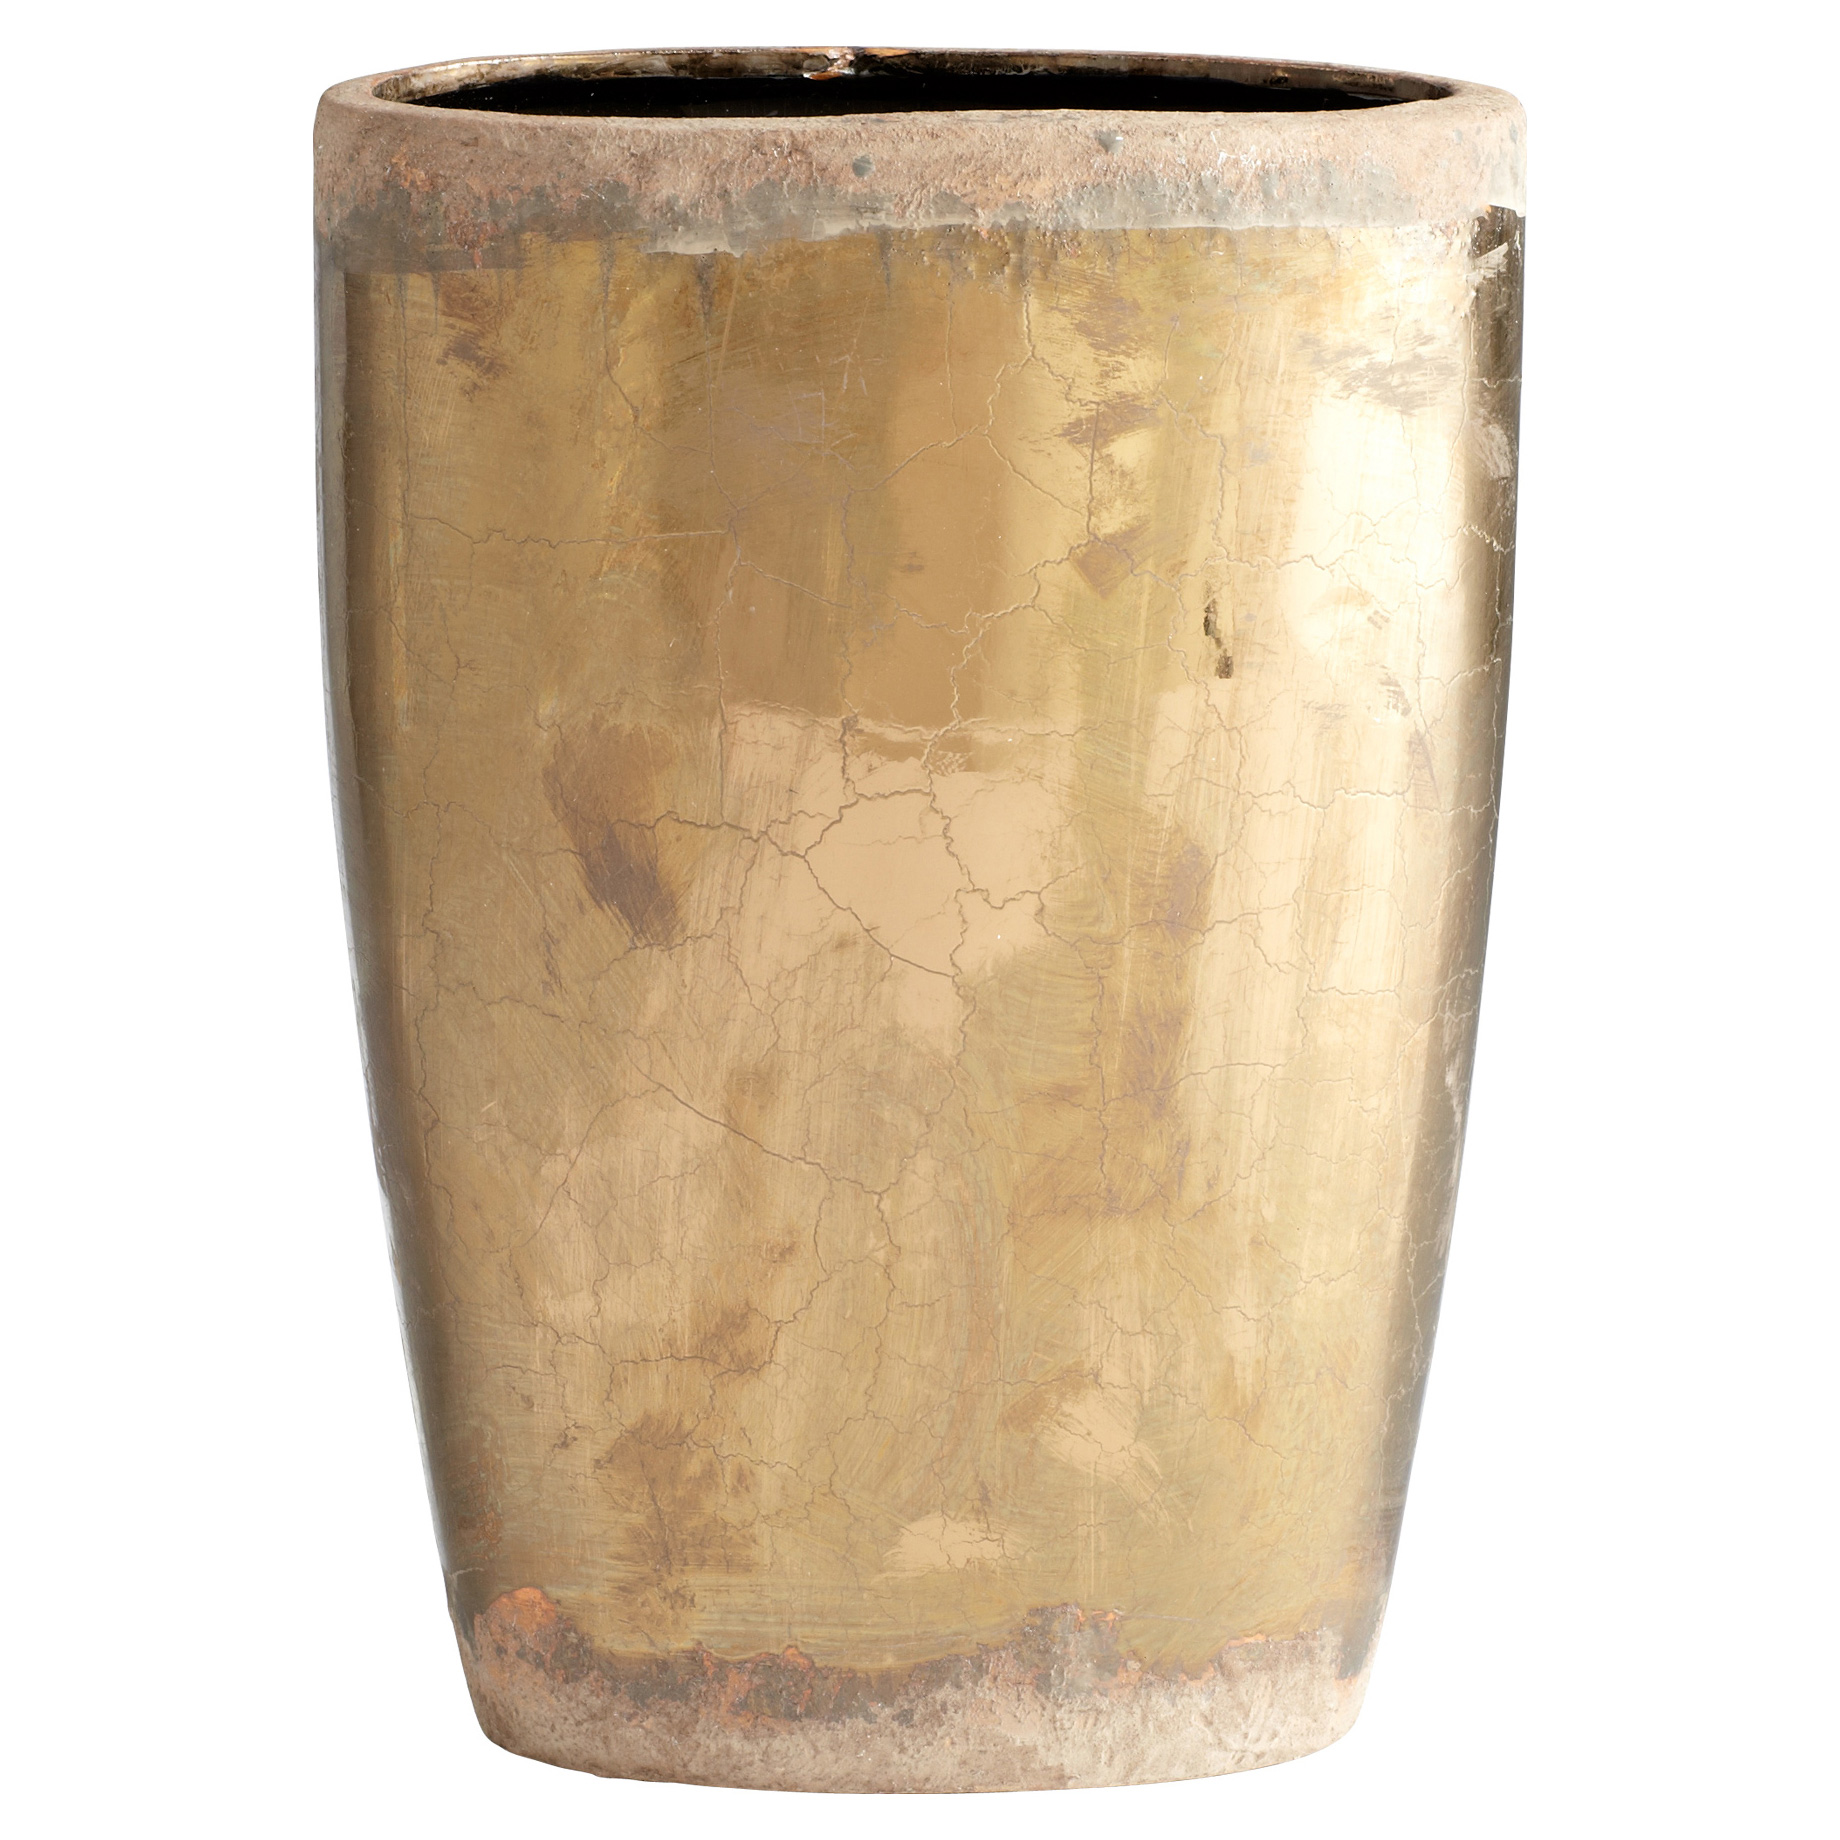 Posu French Country Rustic Planter - L